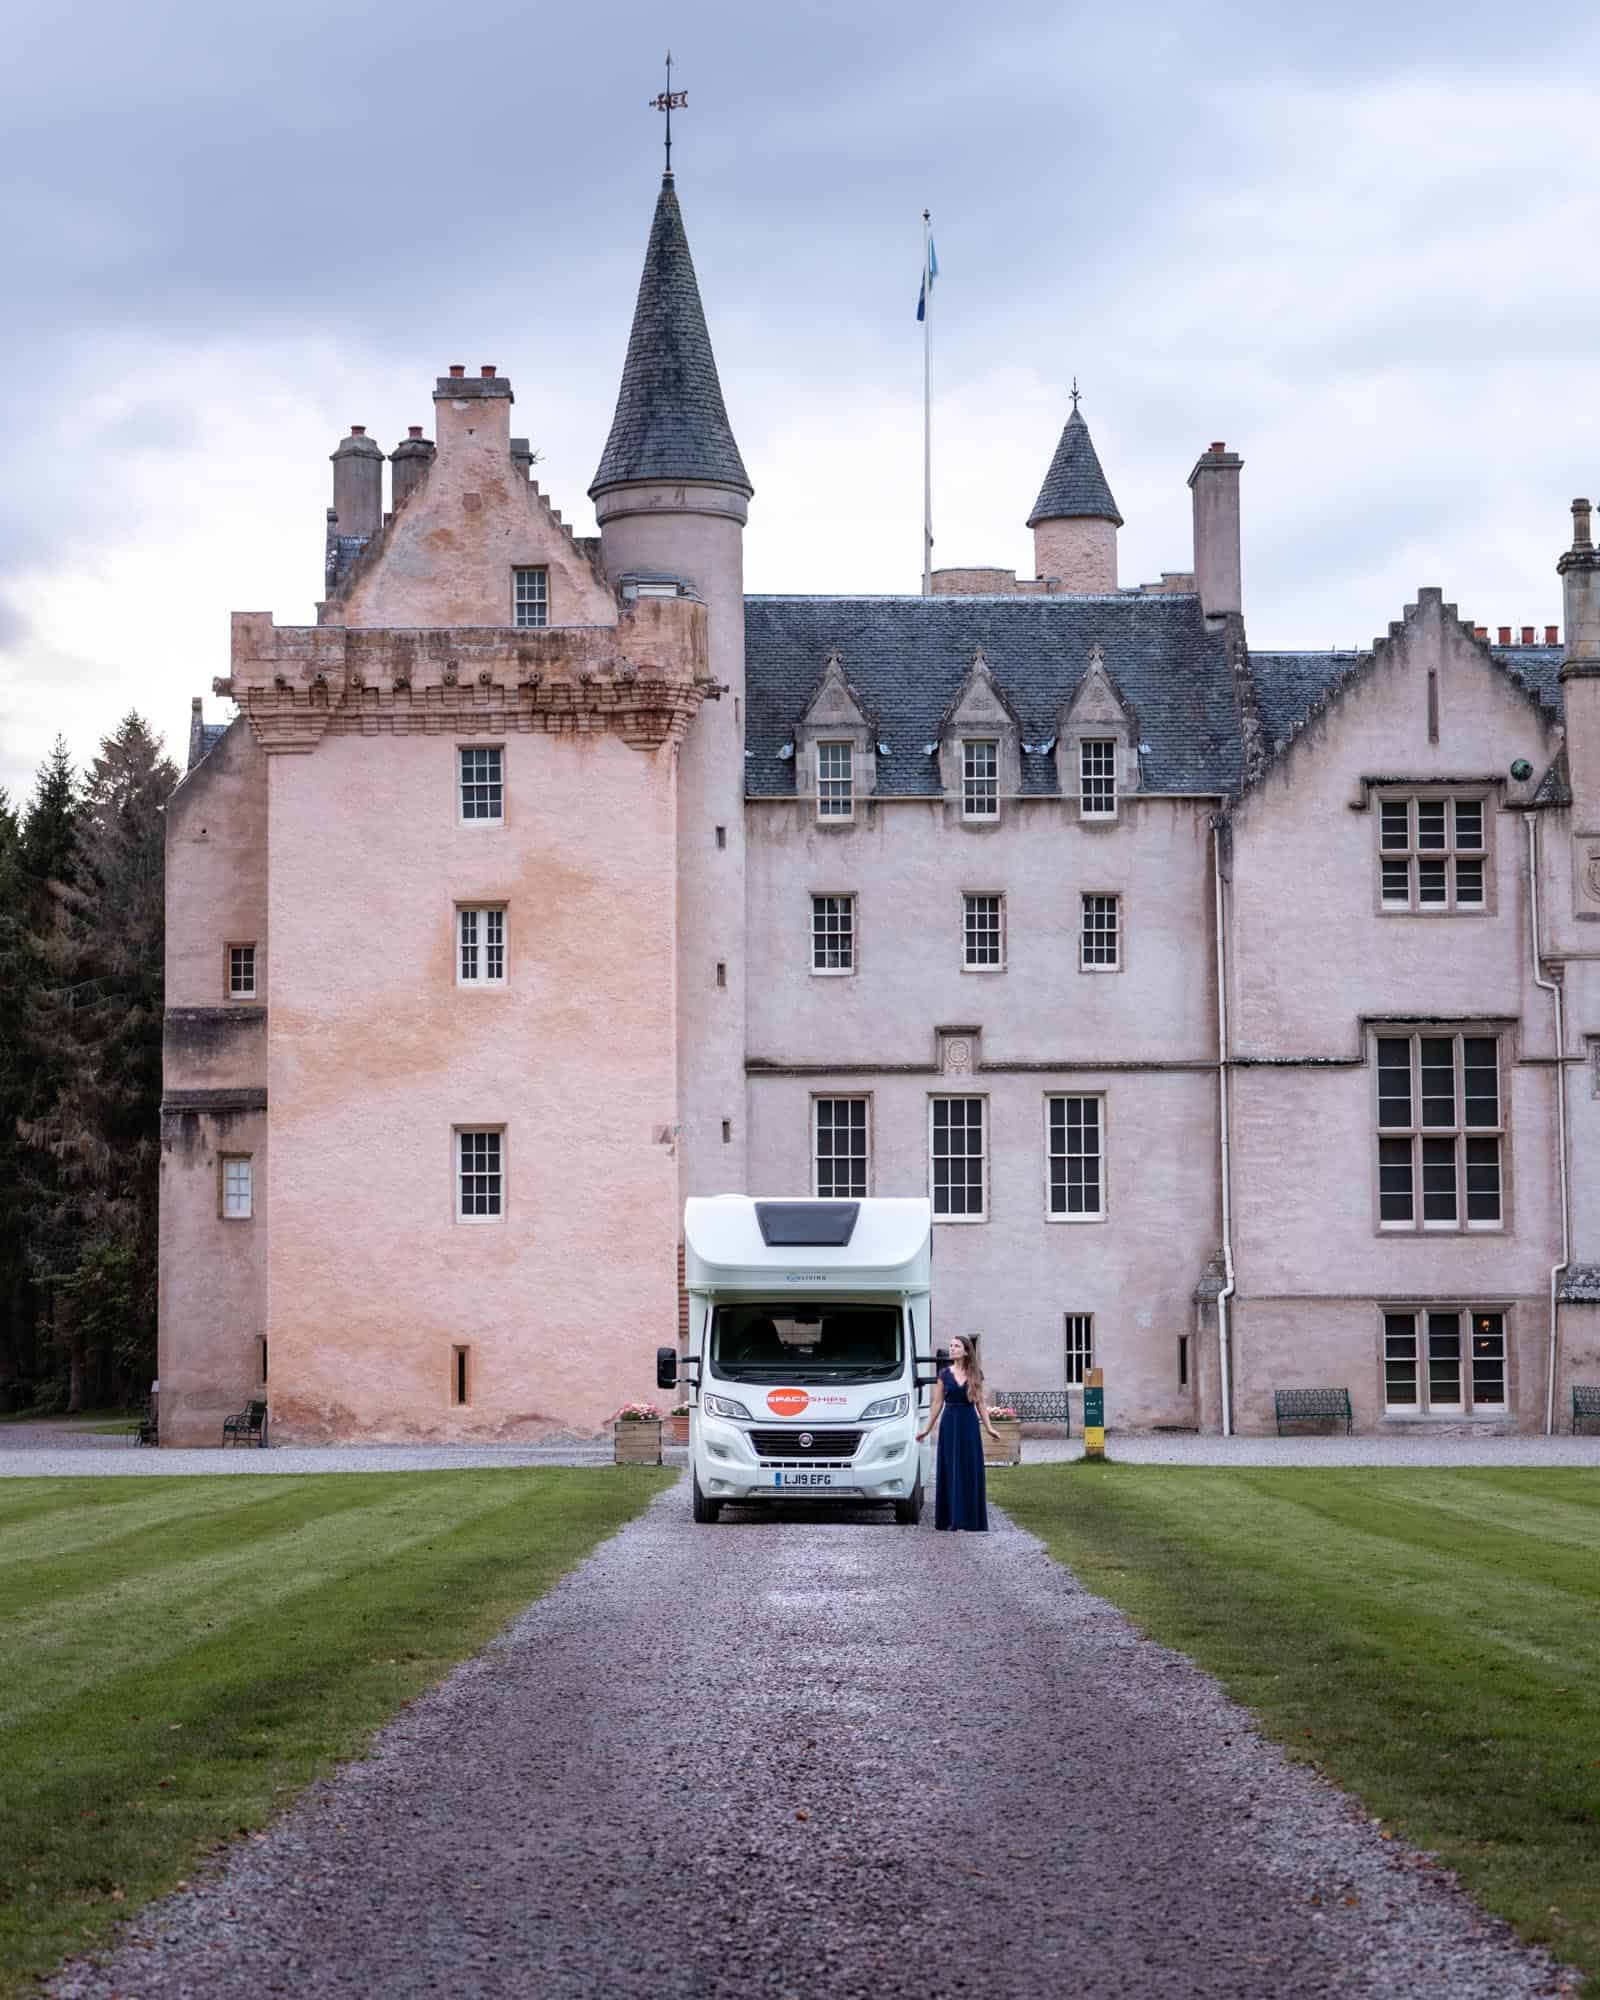 The motorhome I traveled for 10 days in Scotland, parked in front of Brodie Castle.